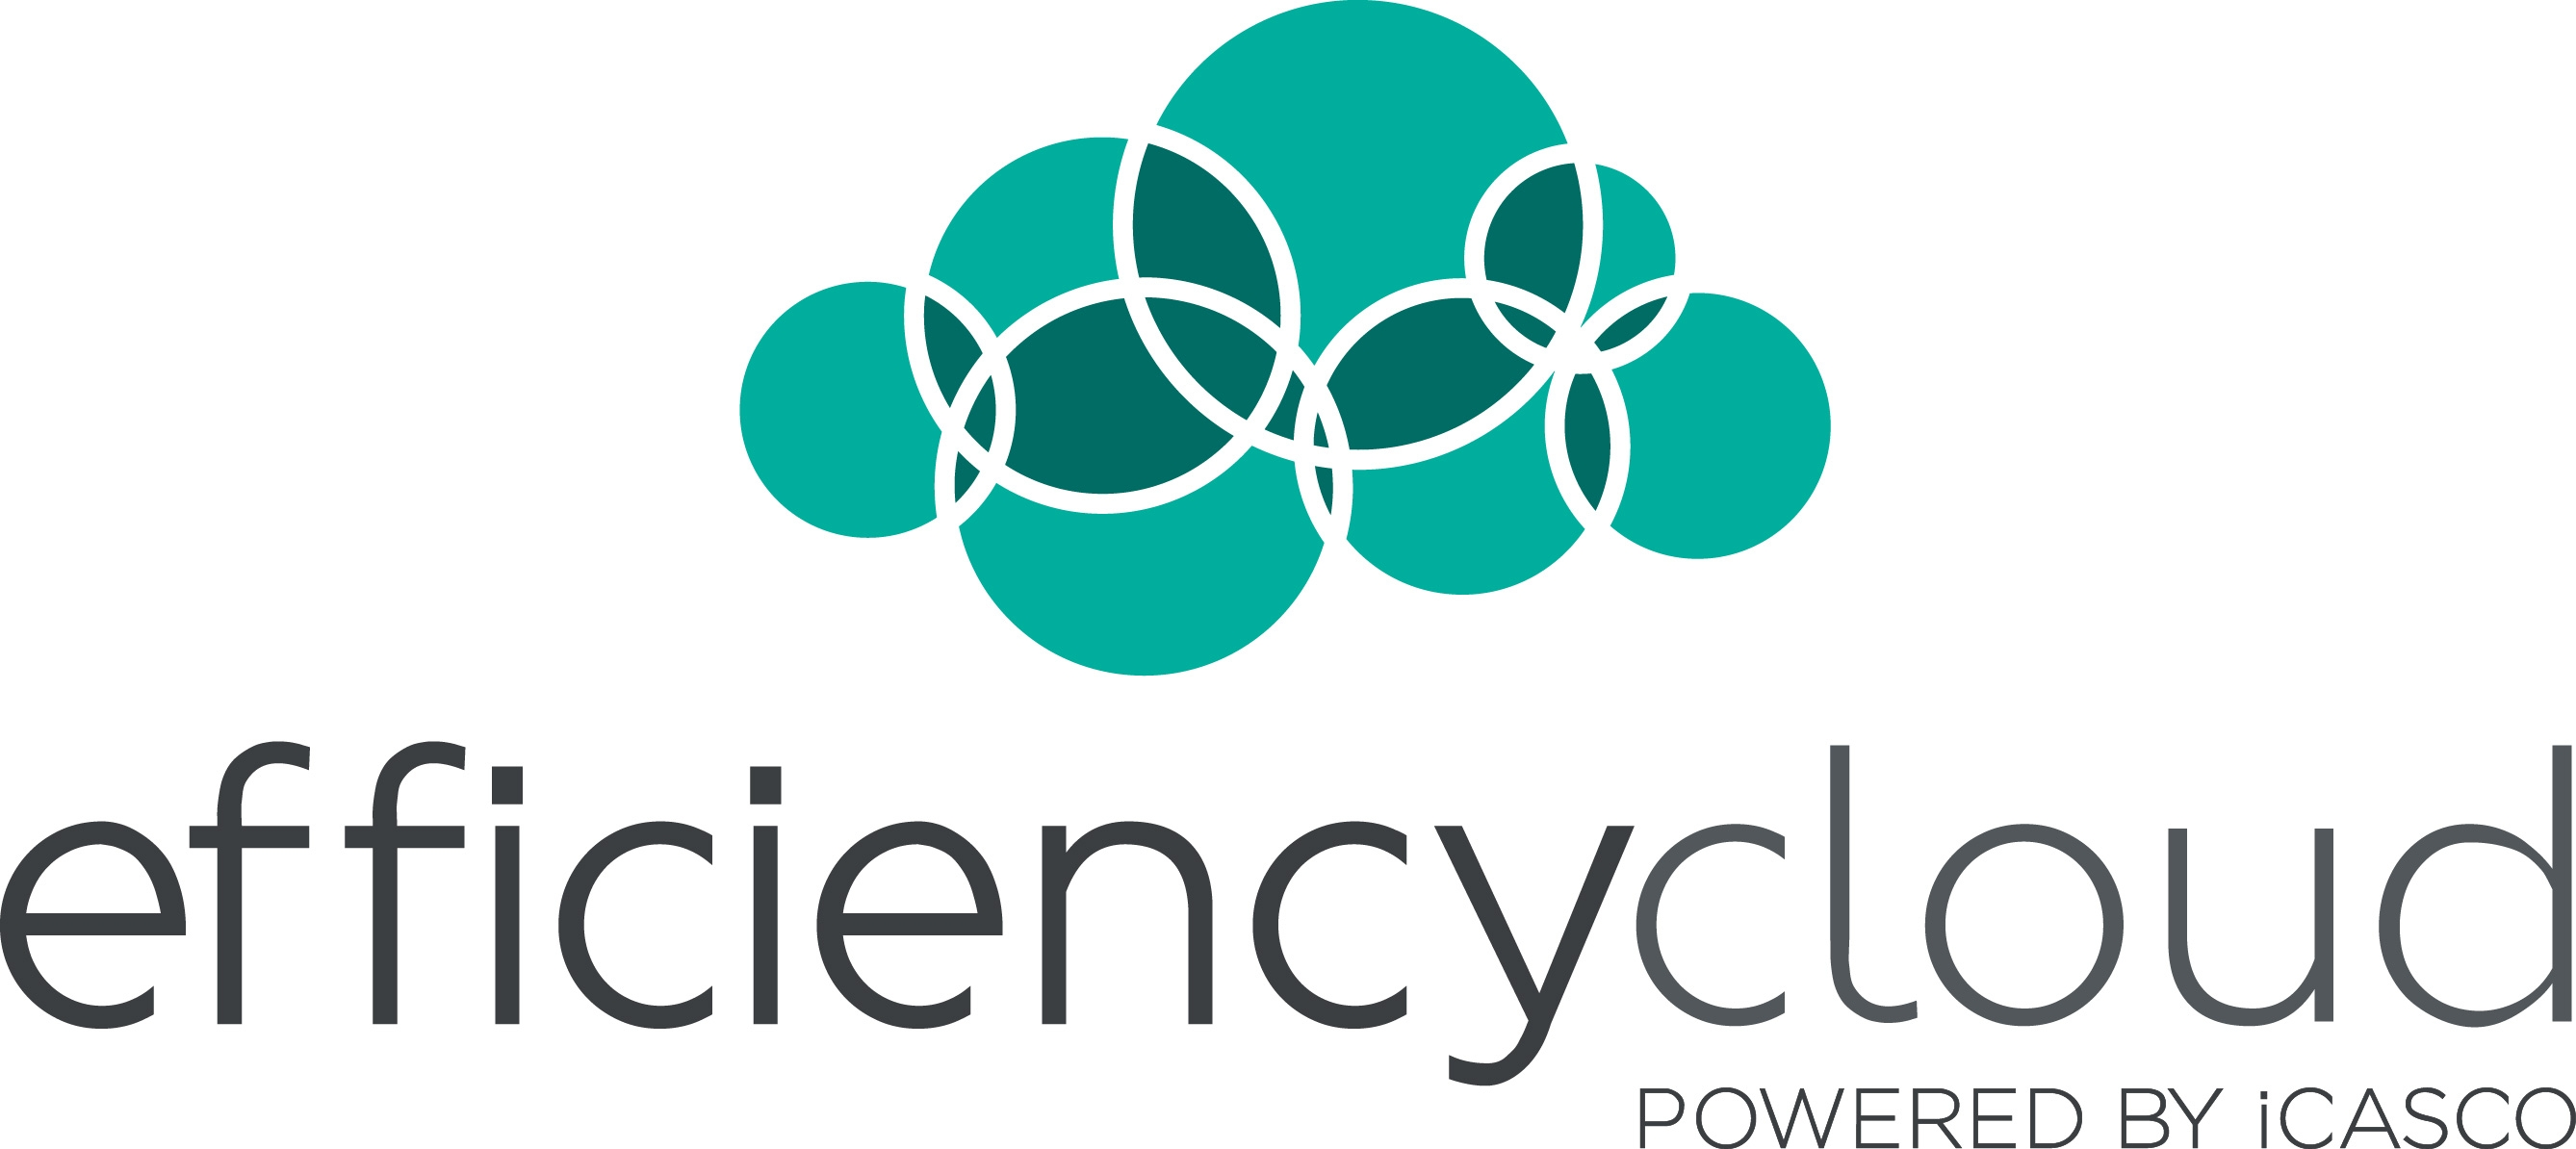 efficiencycloudlogo.jpg